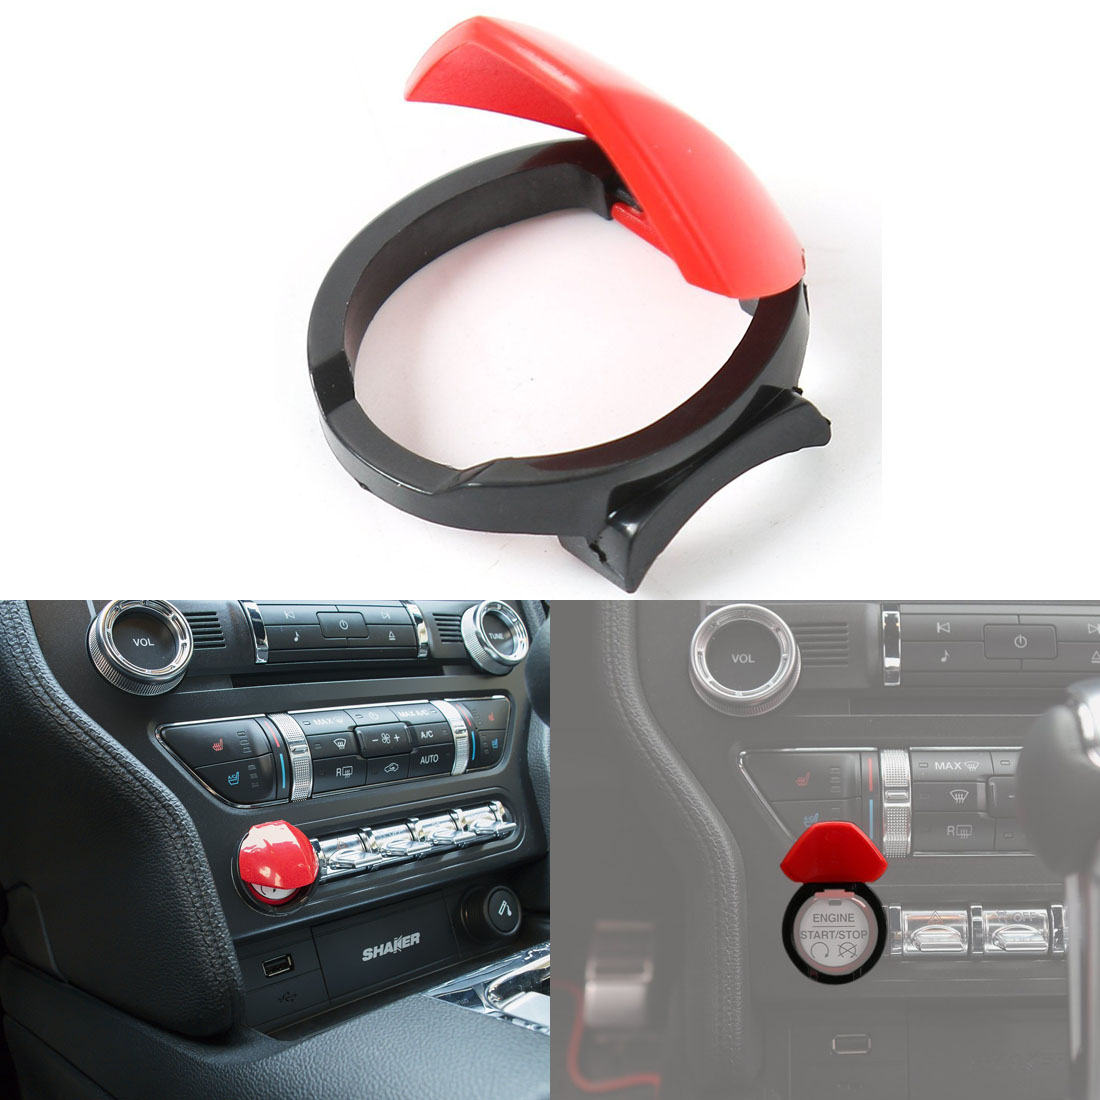 engine start stop ignition push button cover switch for 2015 2018 Finger Engine Start Button engine start stop ignition push button cover switch for 2015 2018 ford mustang